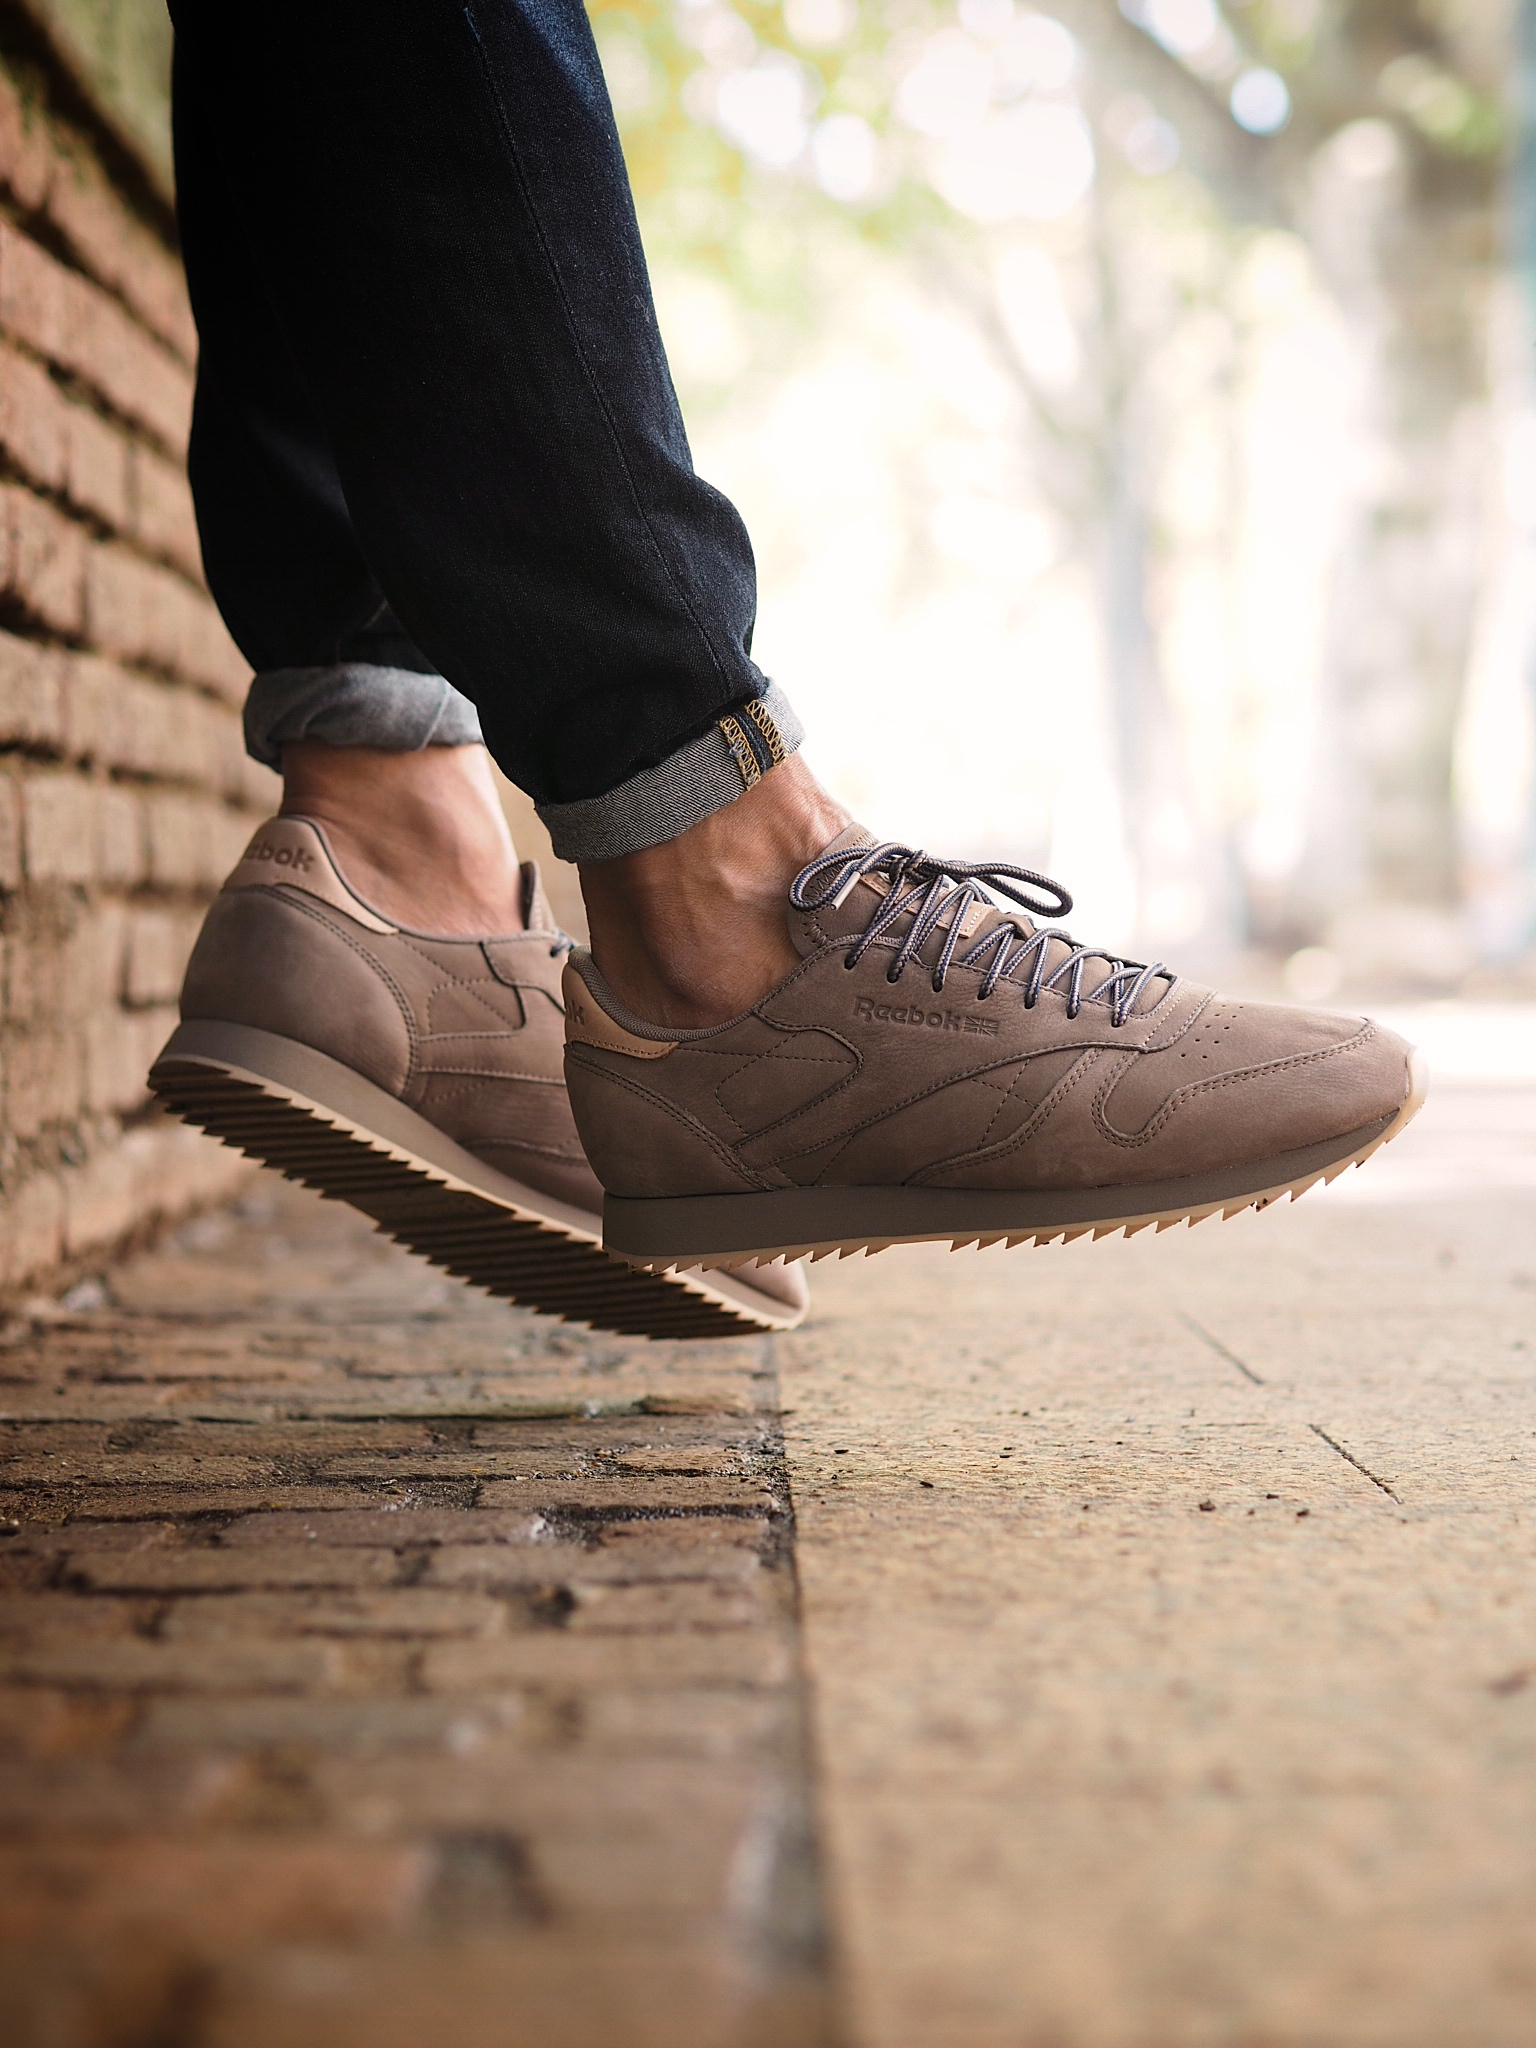 Reebok Classic Leather Ripple Vt- Footlocker Exclusive